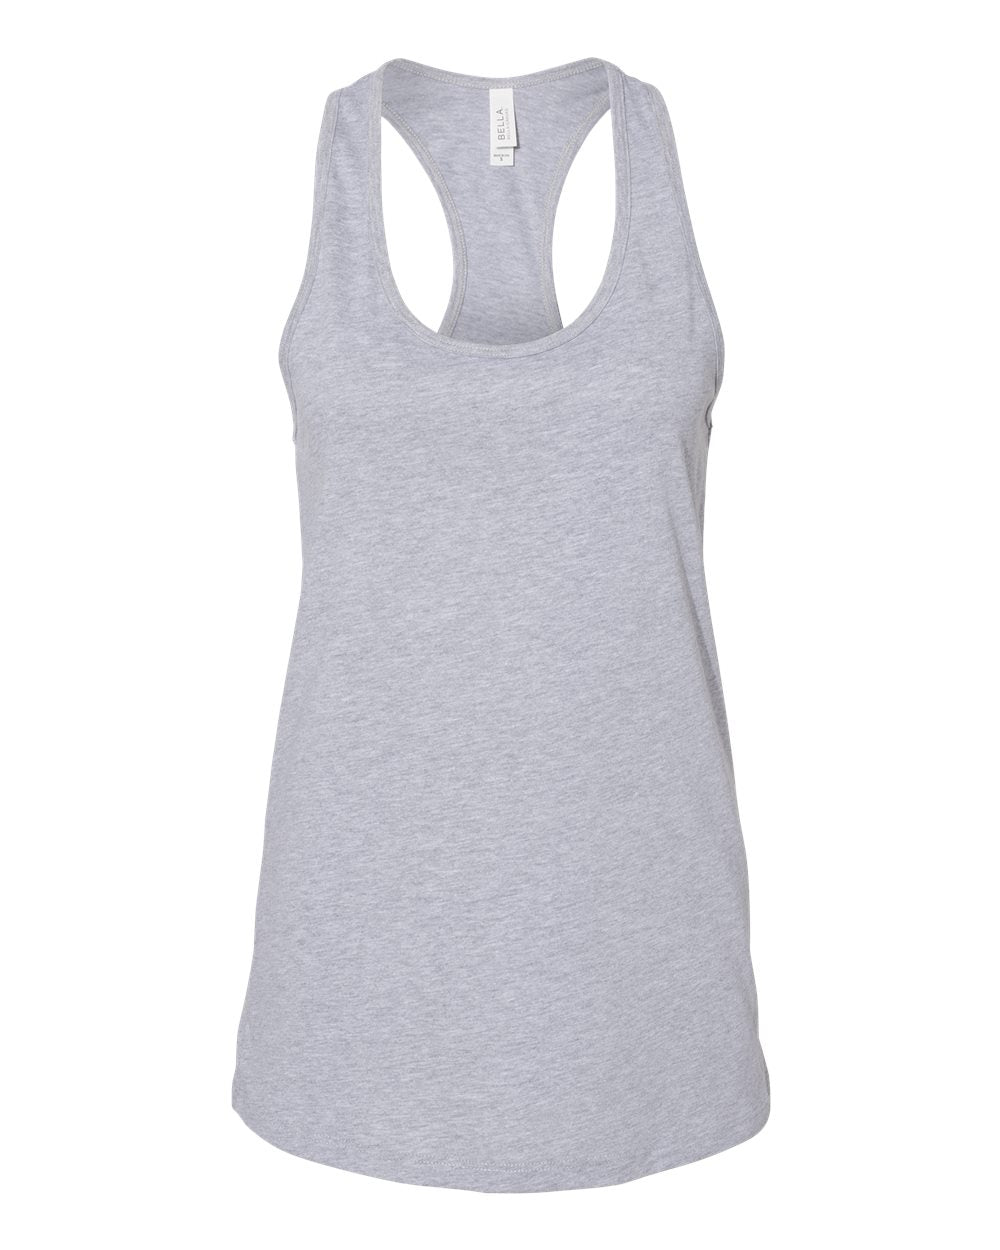 Bella + Canvas - Women's Jersey Racerback Tank - Full Color - 6008